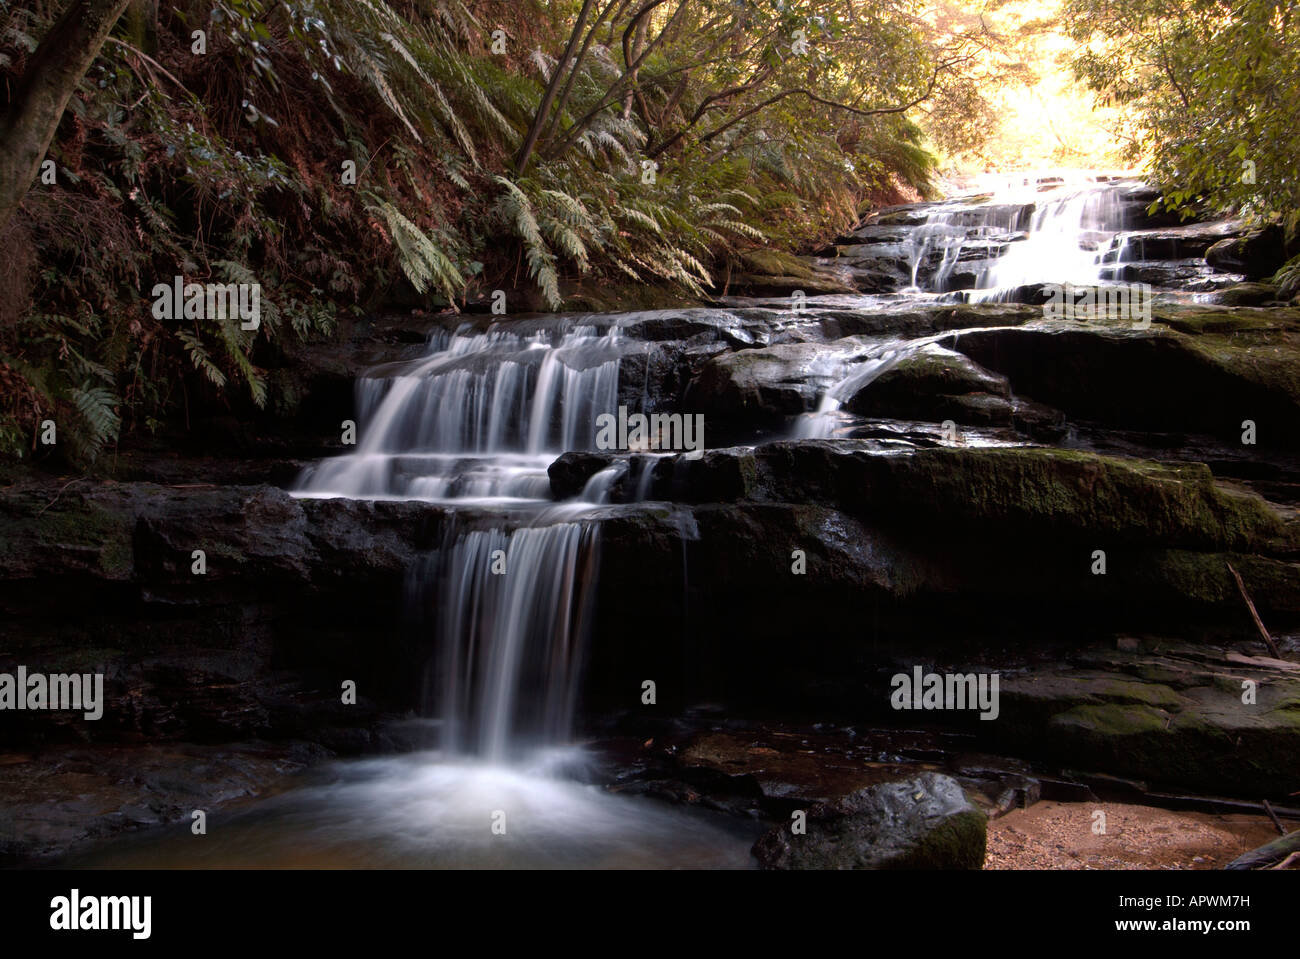 Waterfall called Leura cascades falls among the trees and ferns in the Blue Mountains World Heritage Park Australia Stock Photo